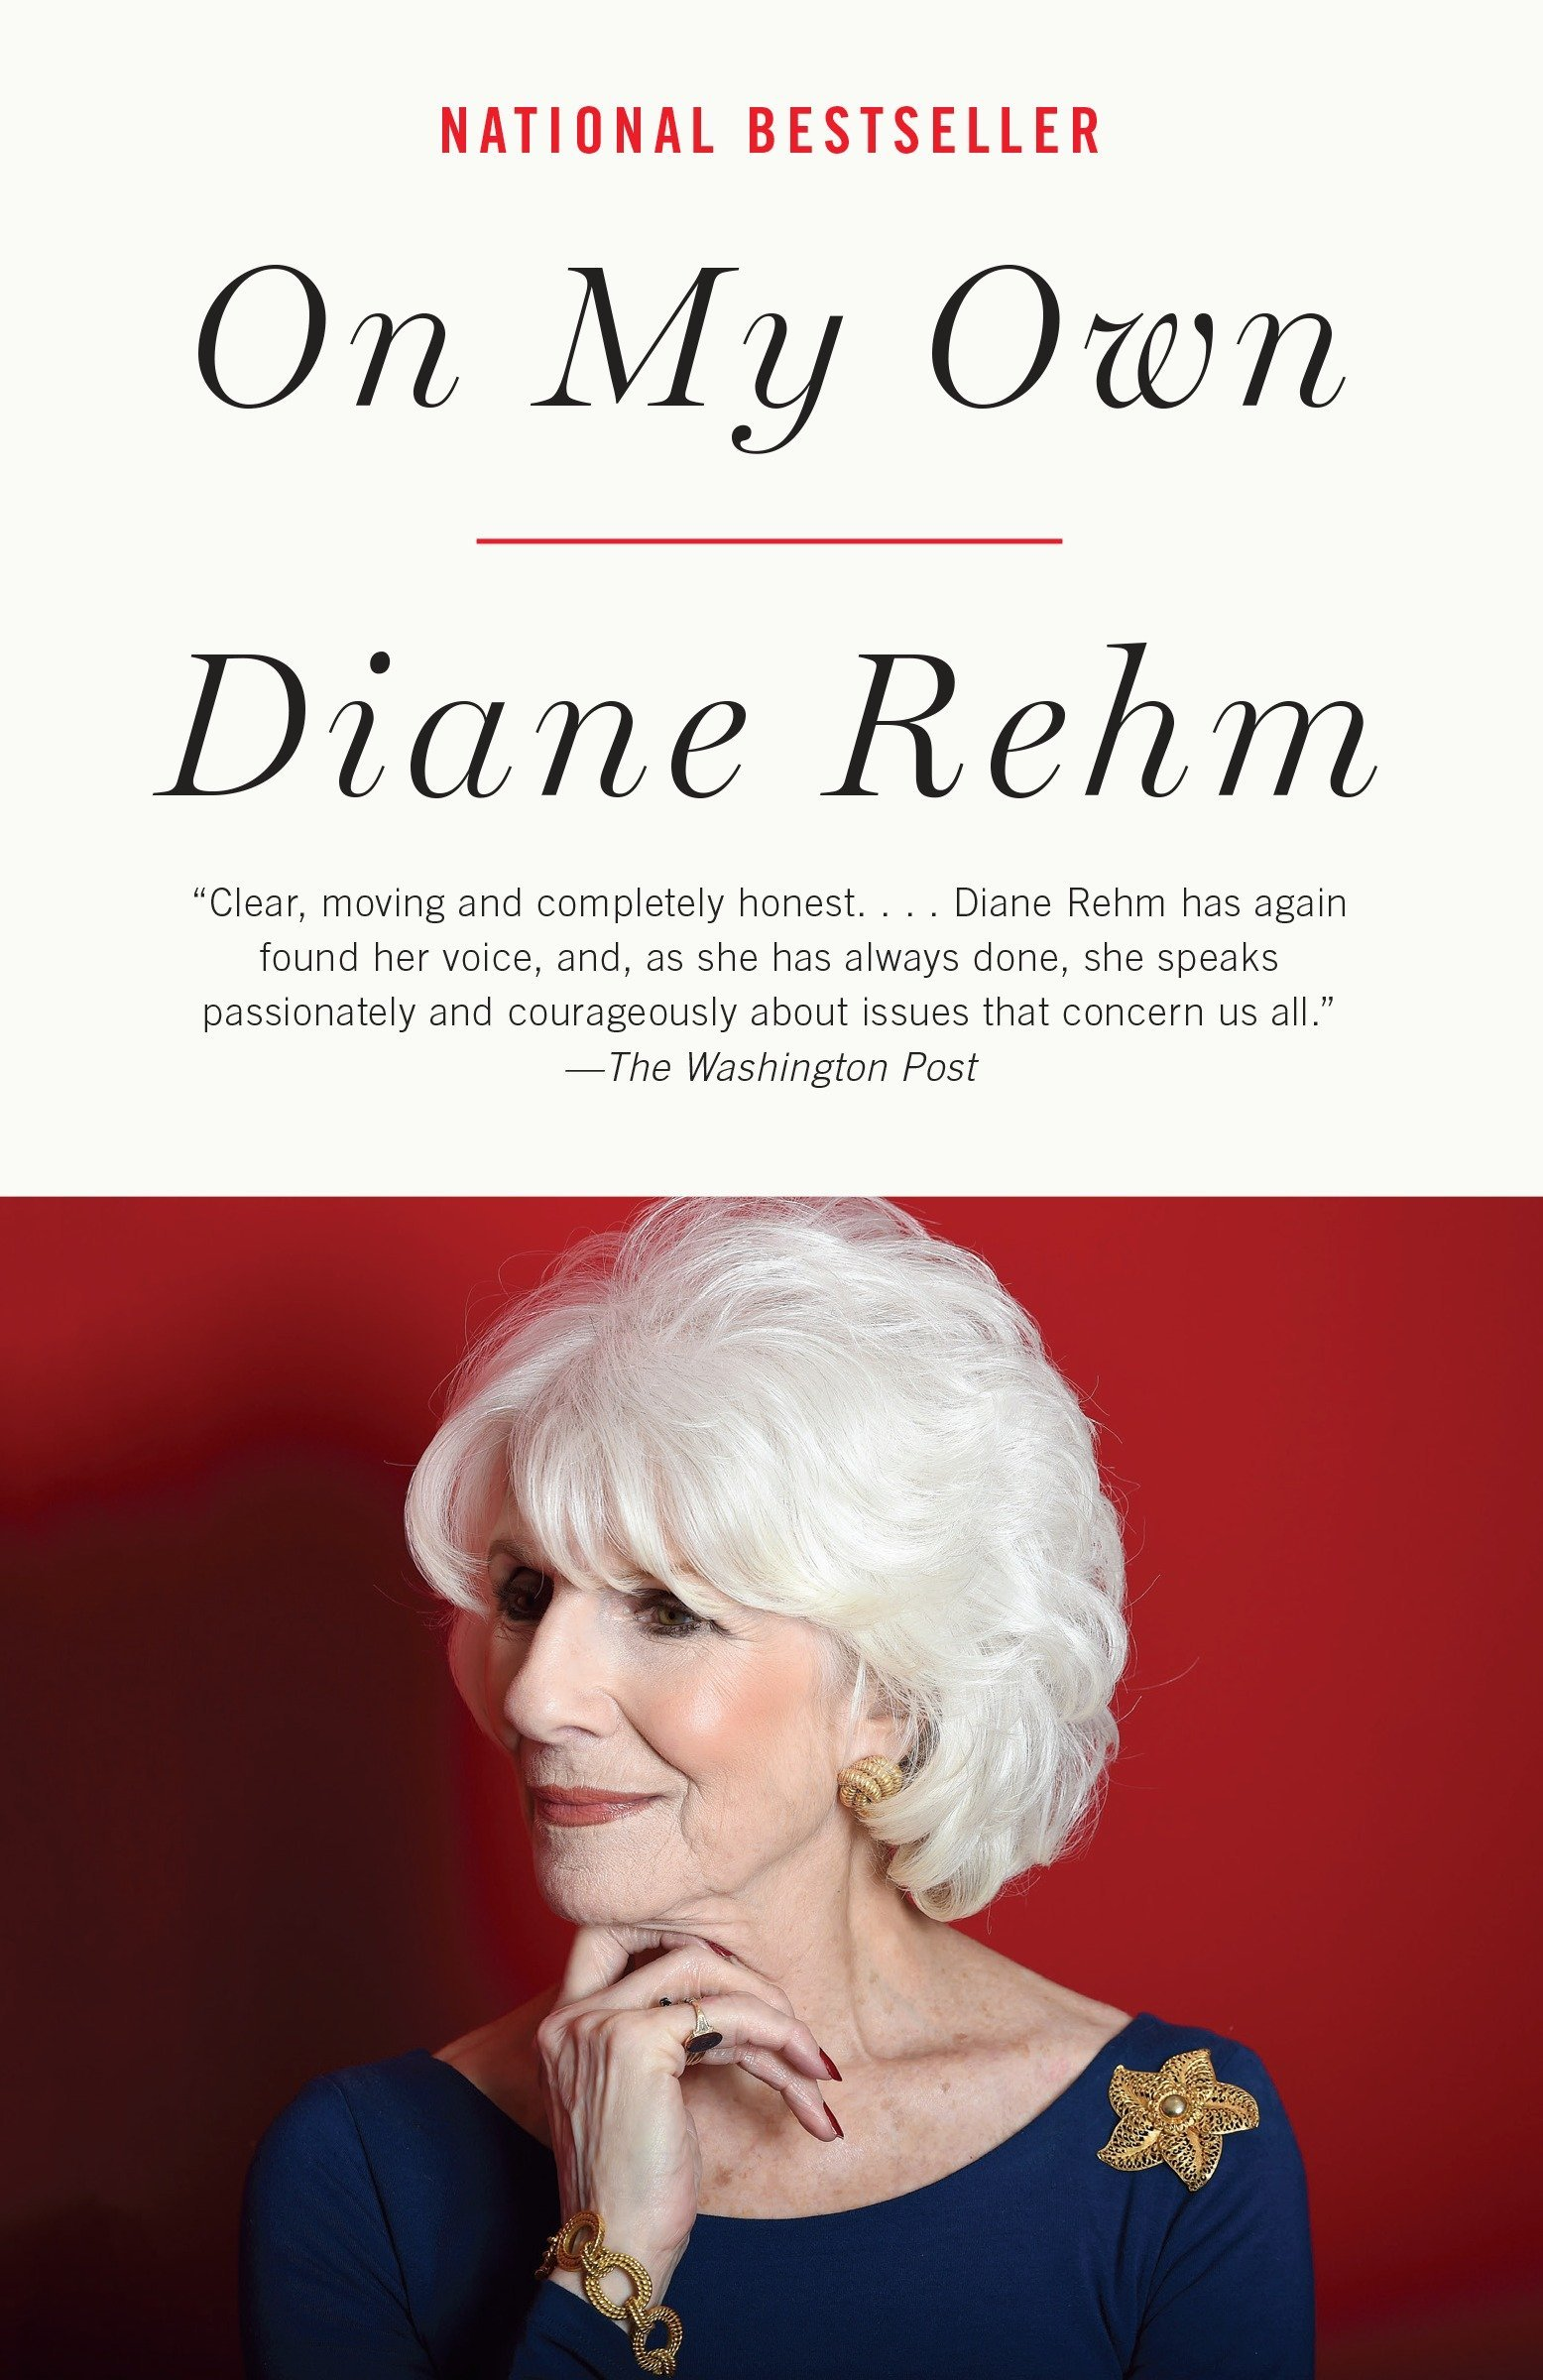 On My Own Paperback – February 7, 2017 Diane Rehm Vintage 1101973641 Death